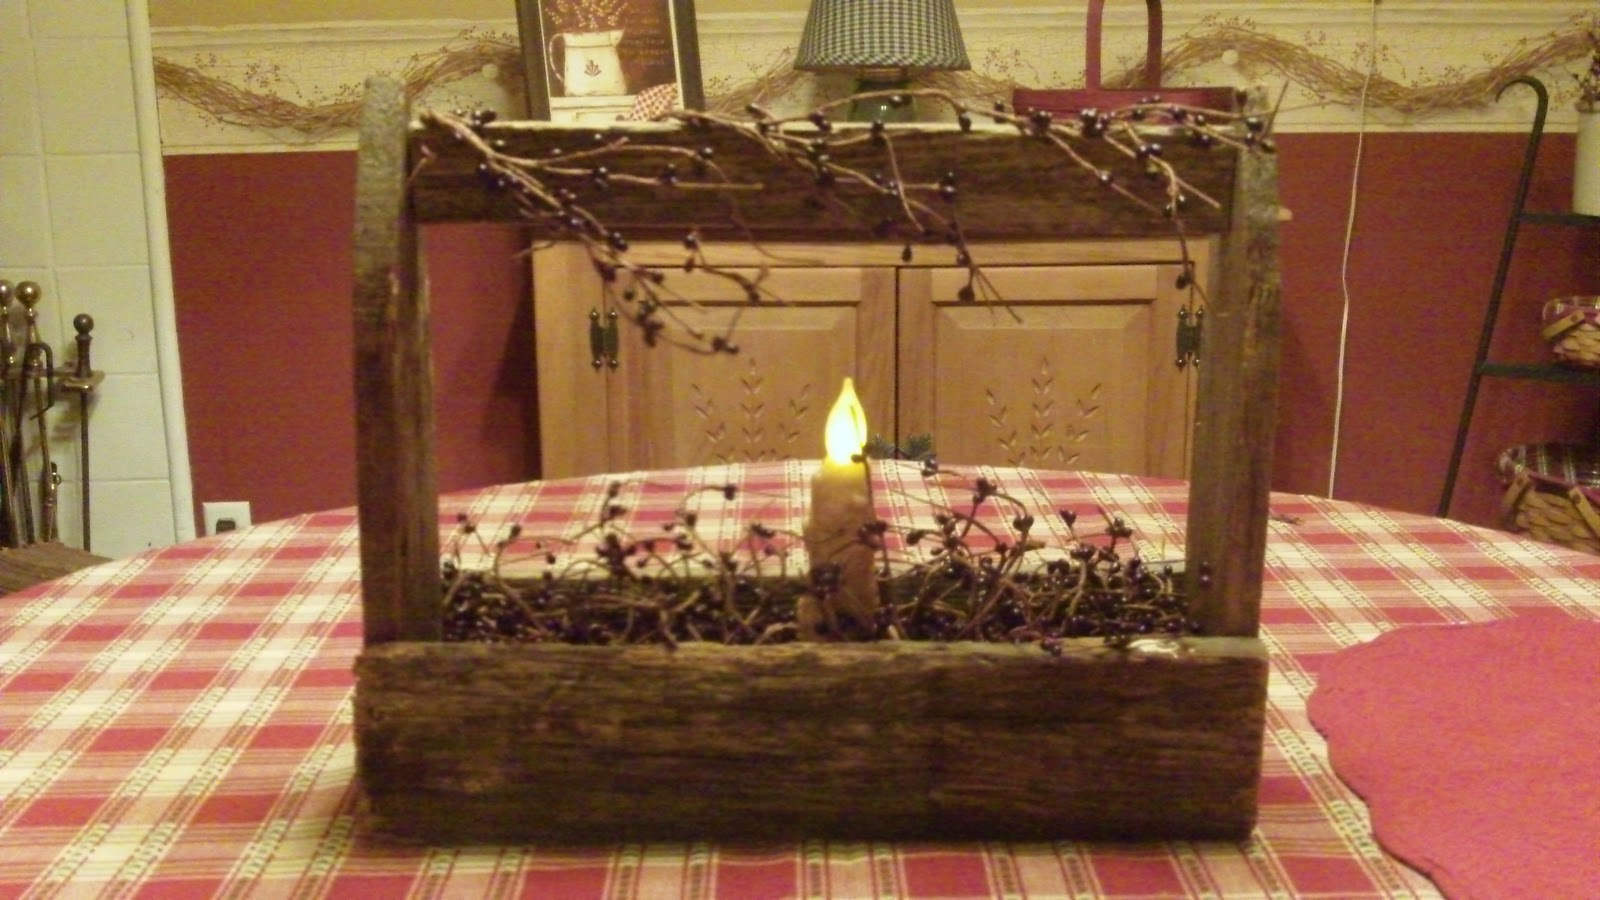 Primitive decorating ideas pinterest autos weblog for Country home decorations cheap